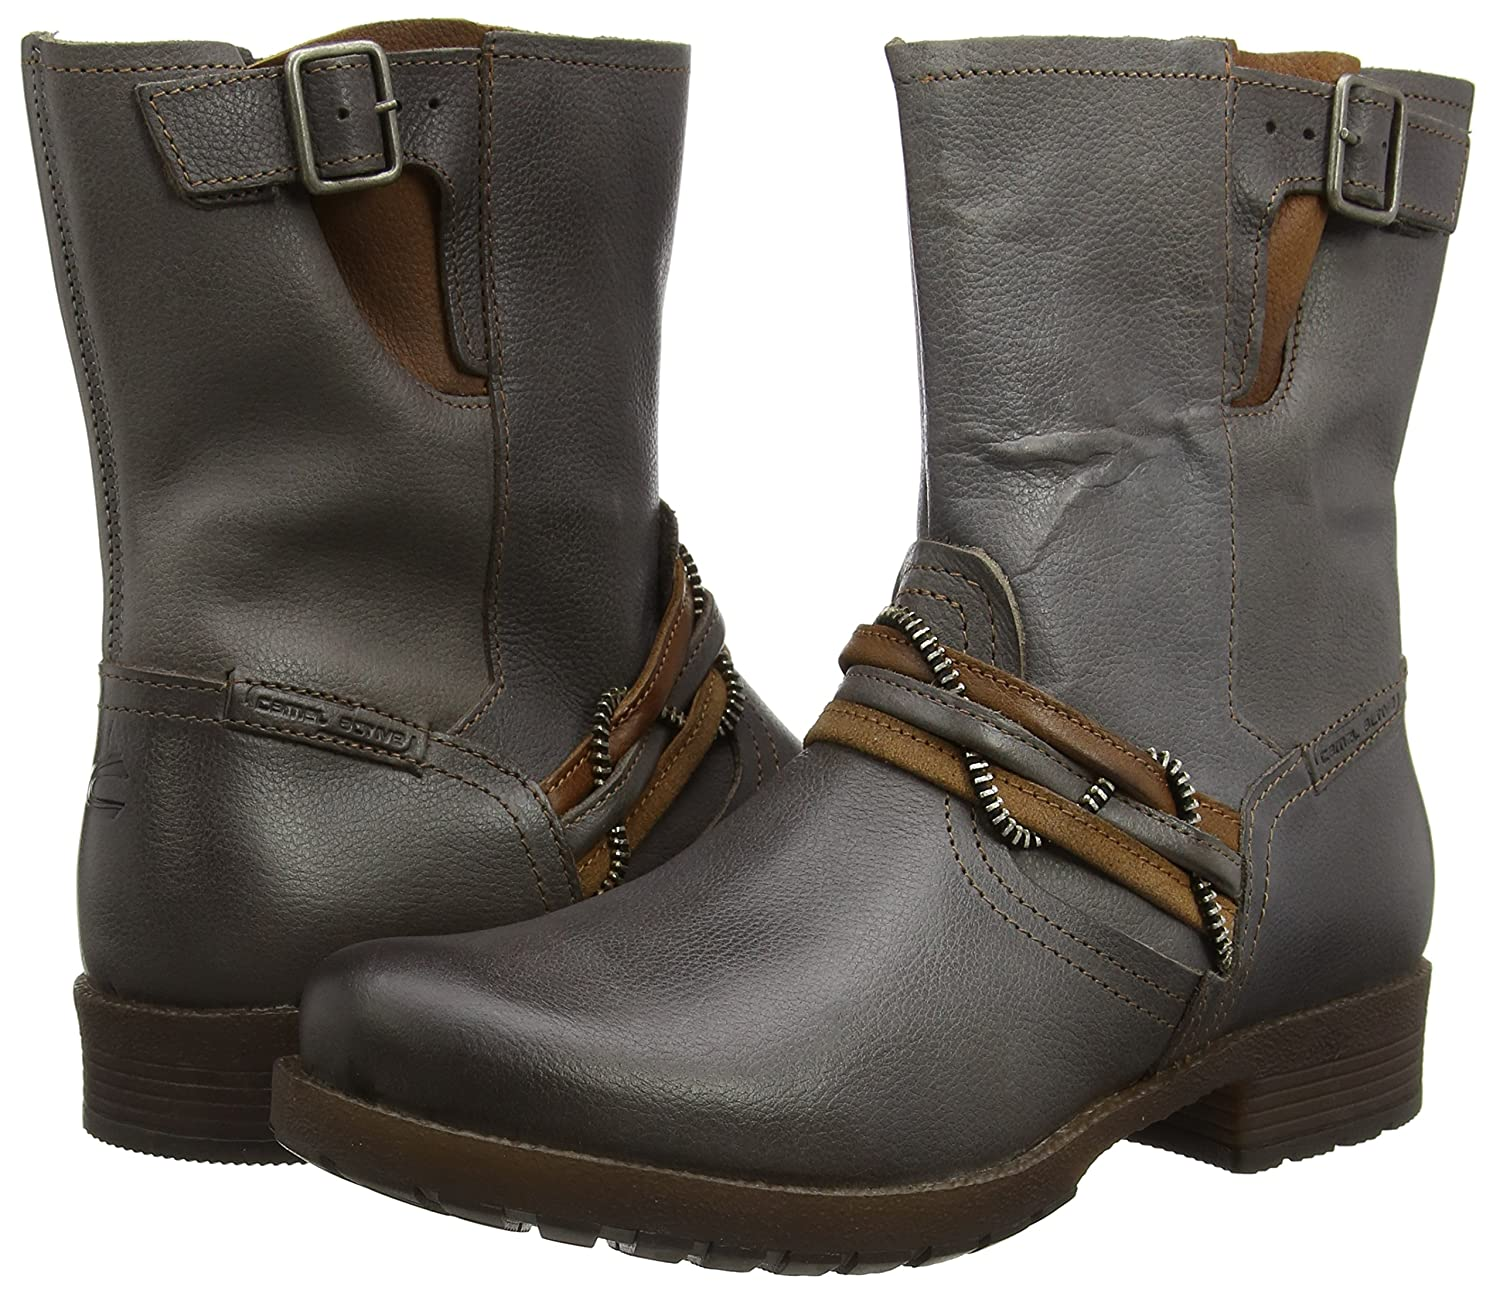 731719de6ba4 camel active Women's Taiga 71 Biker Boots: Amazon.co.uk: Shoes & Bags